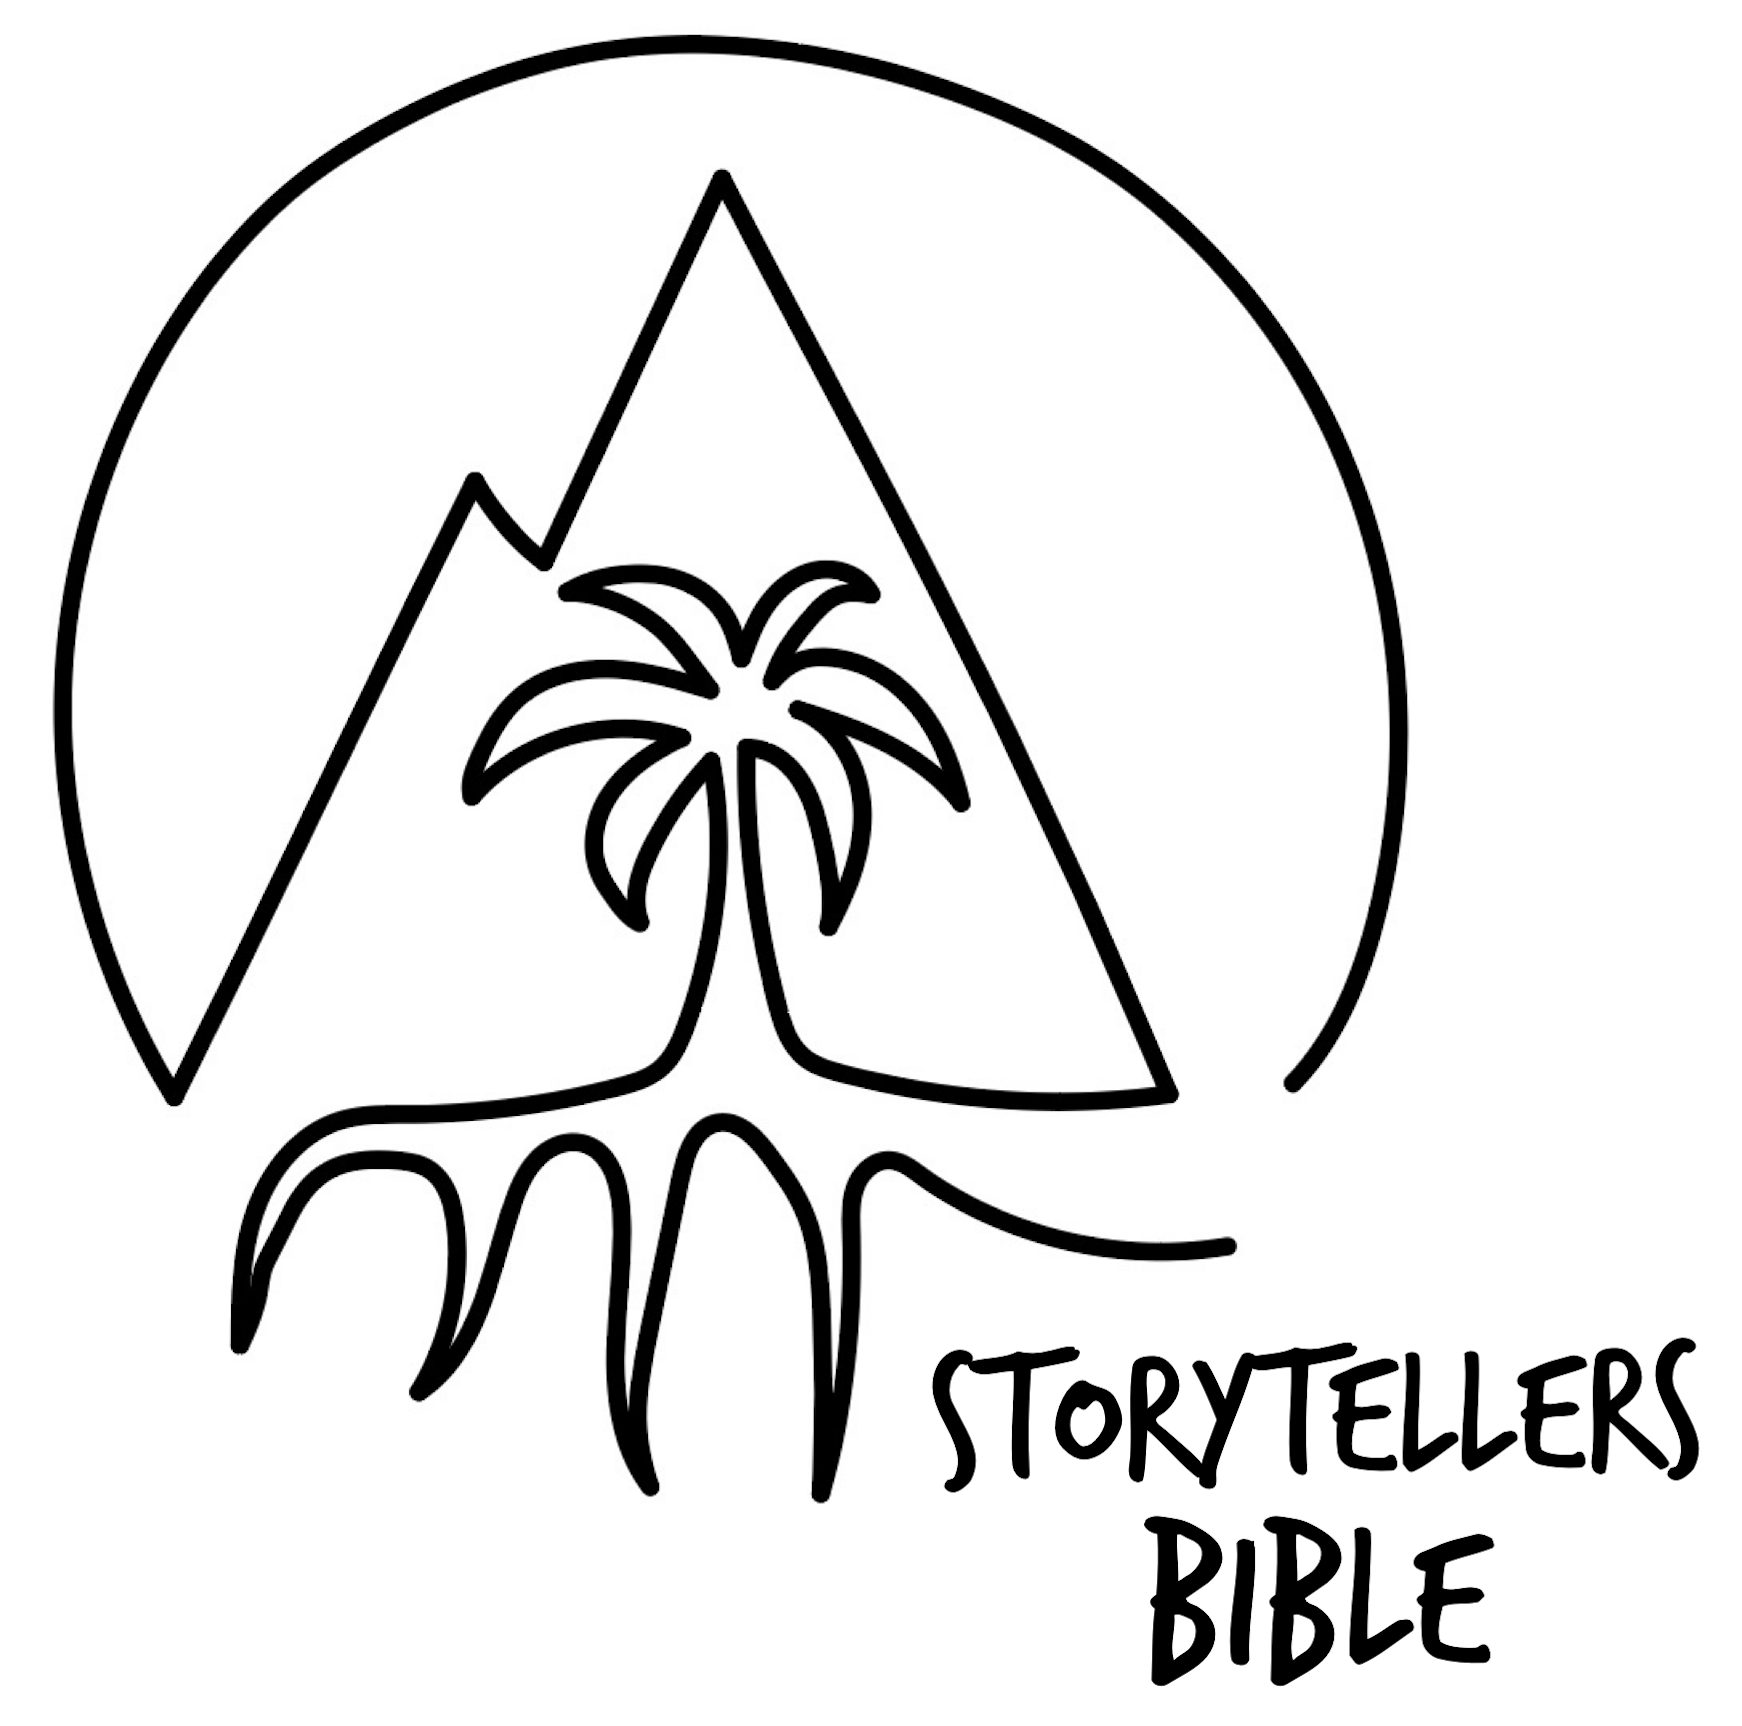 storytellers bible logo draw